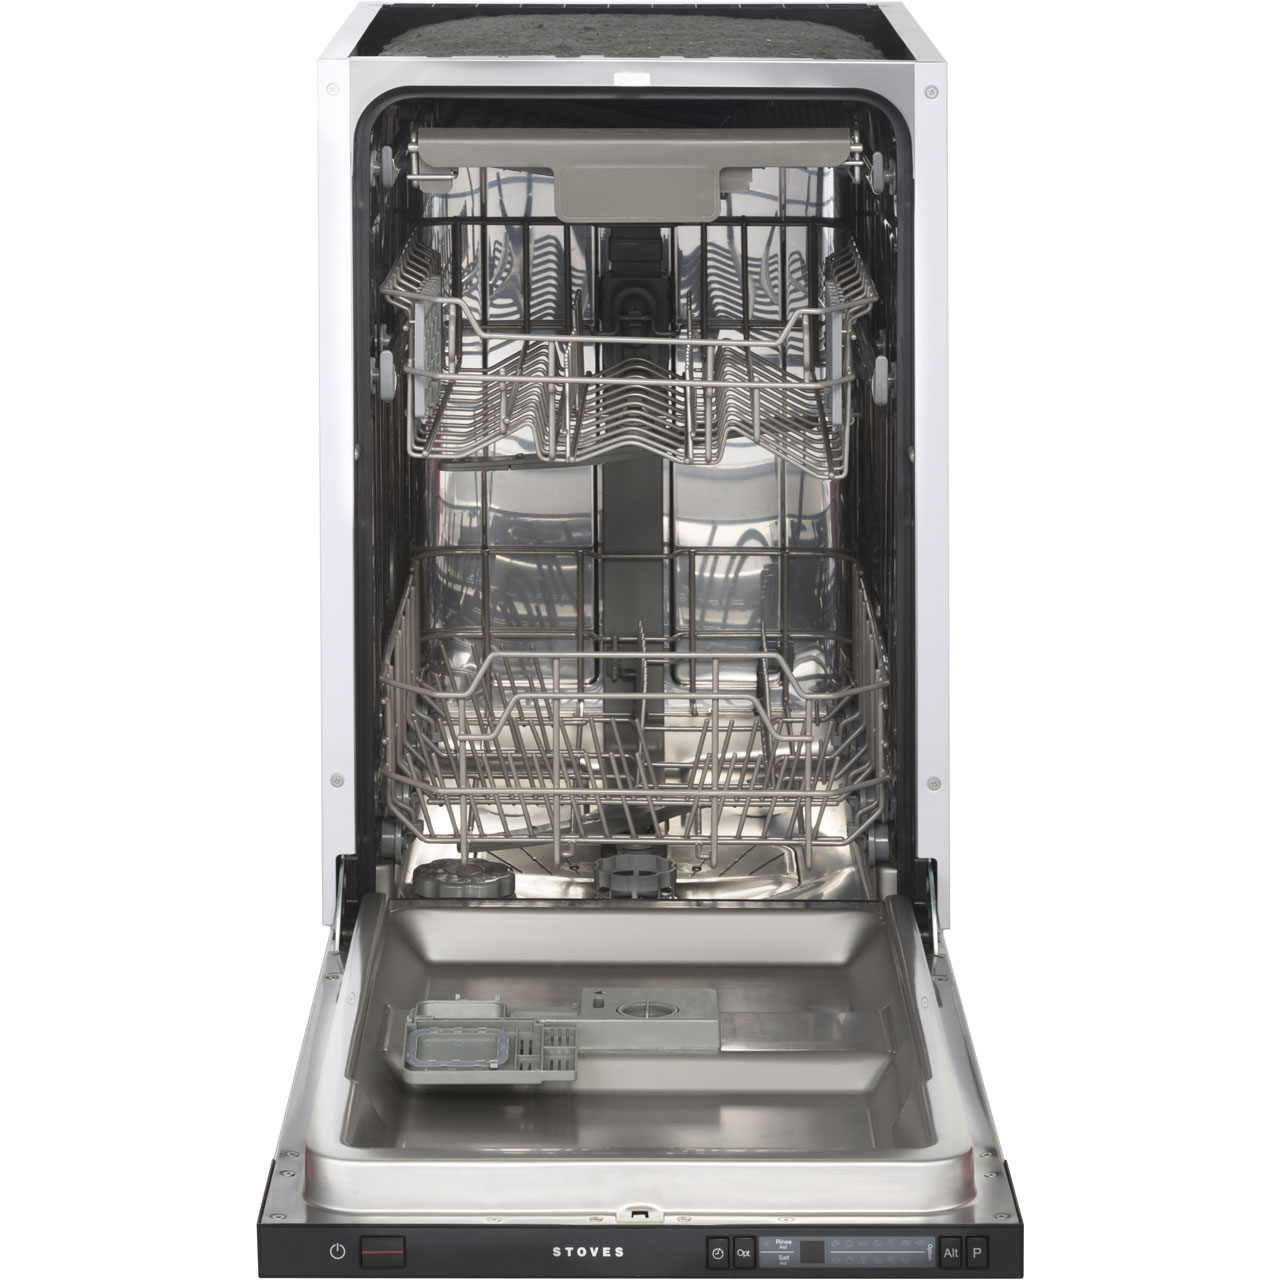 Stoves INTDW45 Integrated Slimline Dishwasher in Black